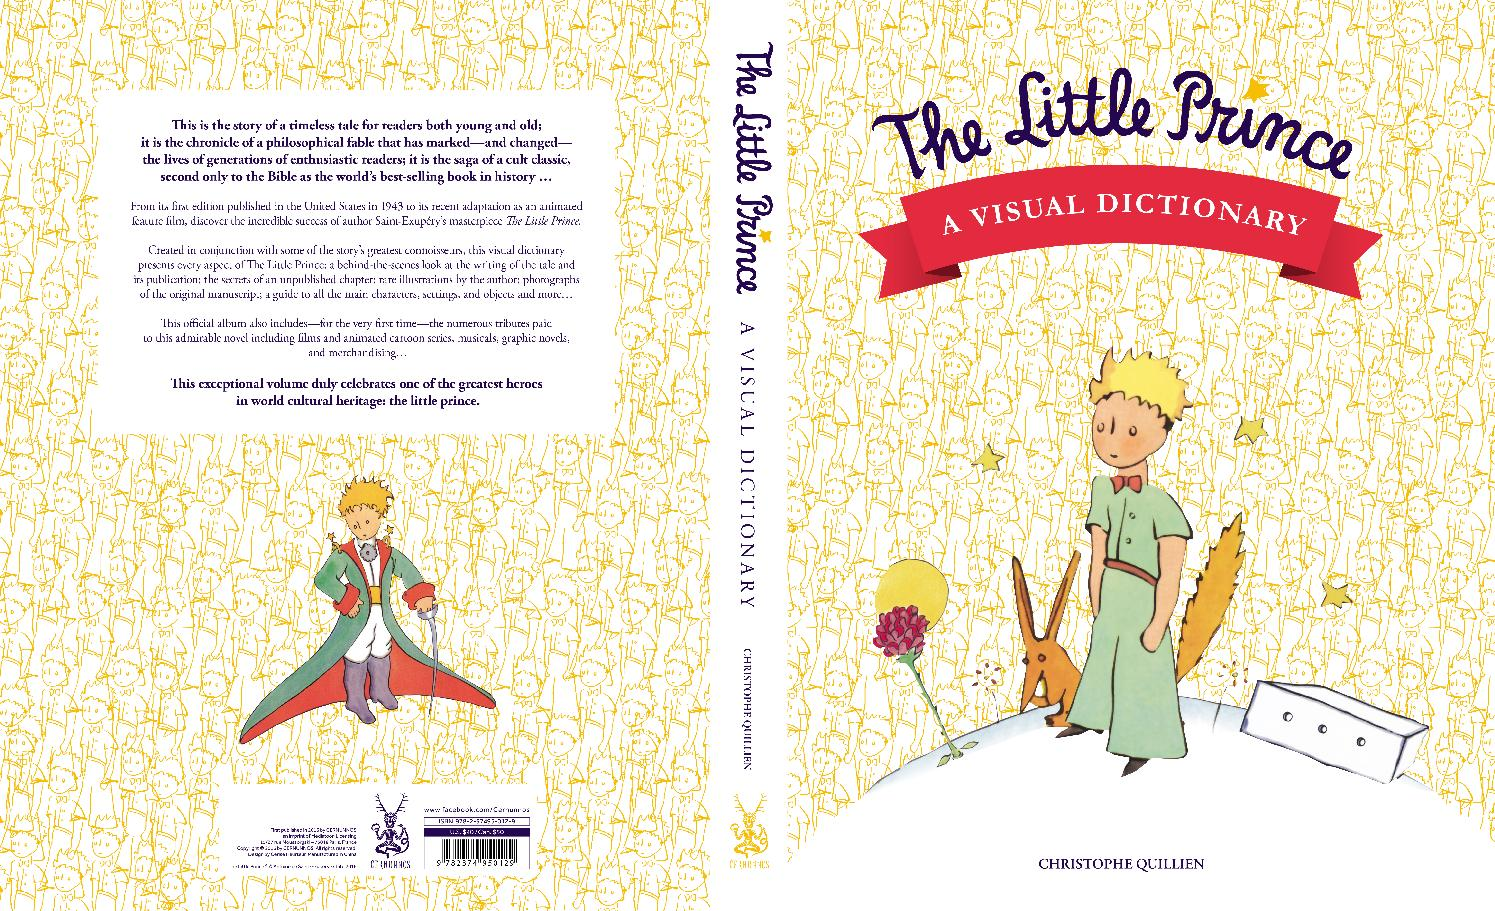 The Little Prince A Visual Dictionary By Cernunnos Publishing Issuu